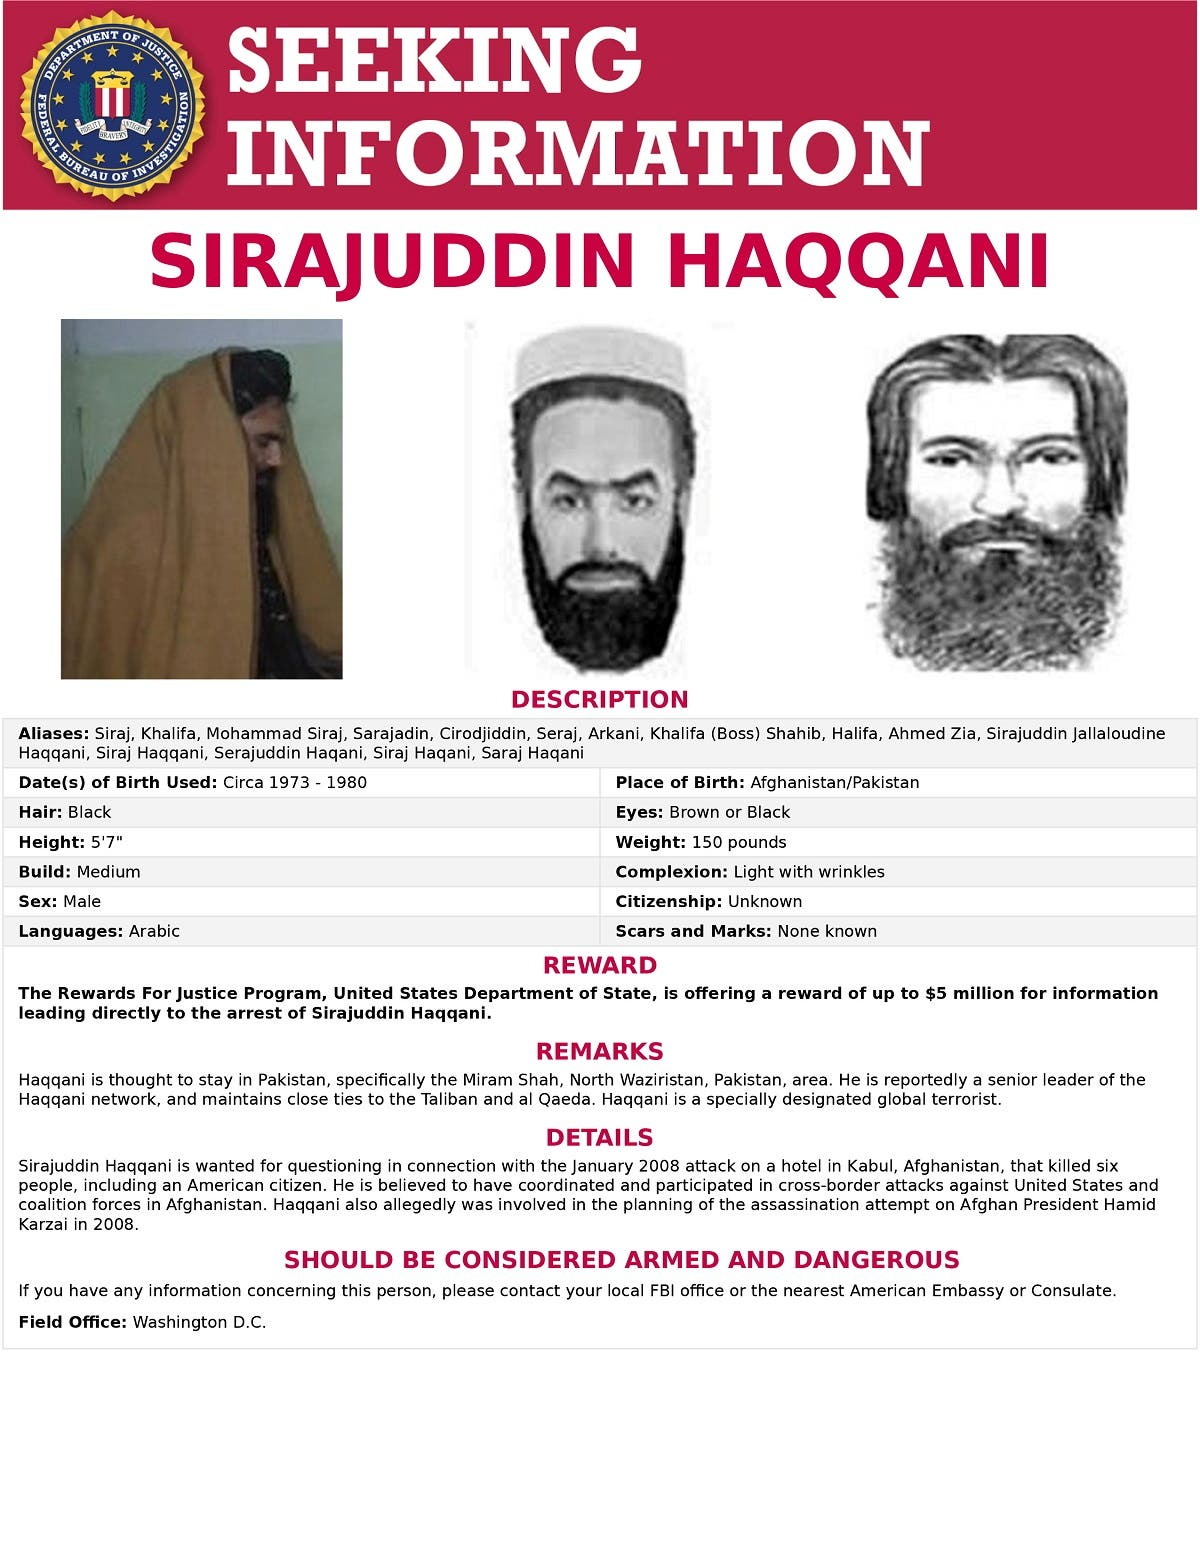 The 'Seeking Information' poster issued by the US Federal Bureau of Investigation for Sirajuddin Haqqani, who is Afghanistan's newly appointed acting interior minister. (FBI/Handout via Reuters)